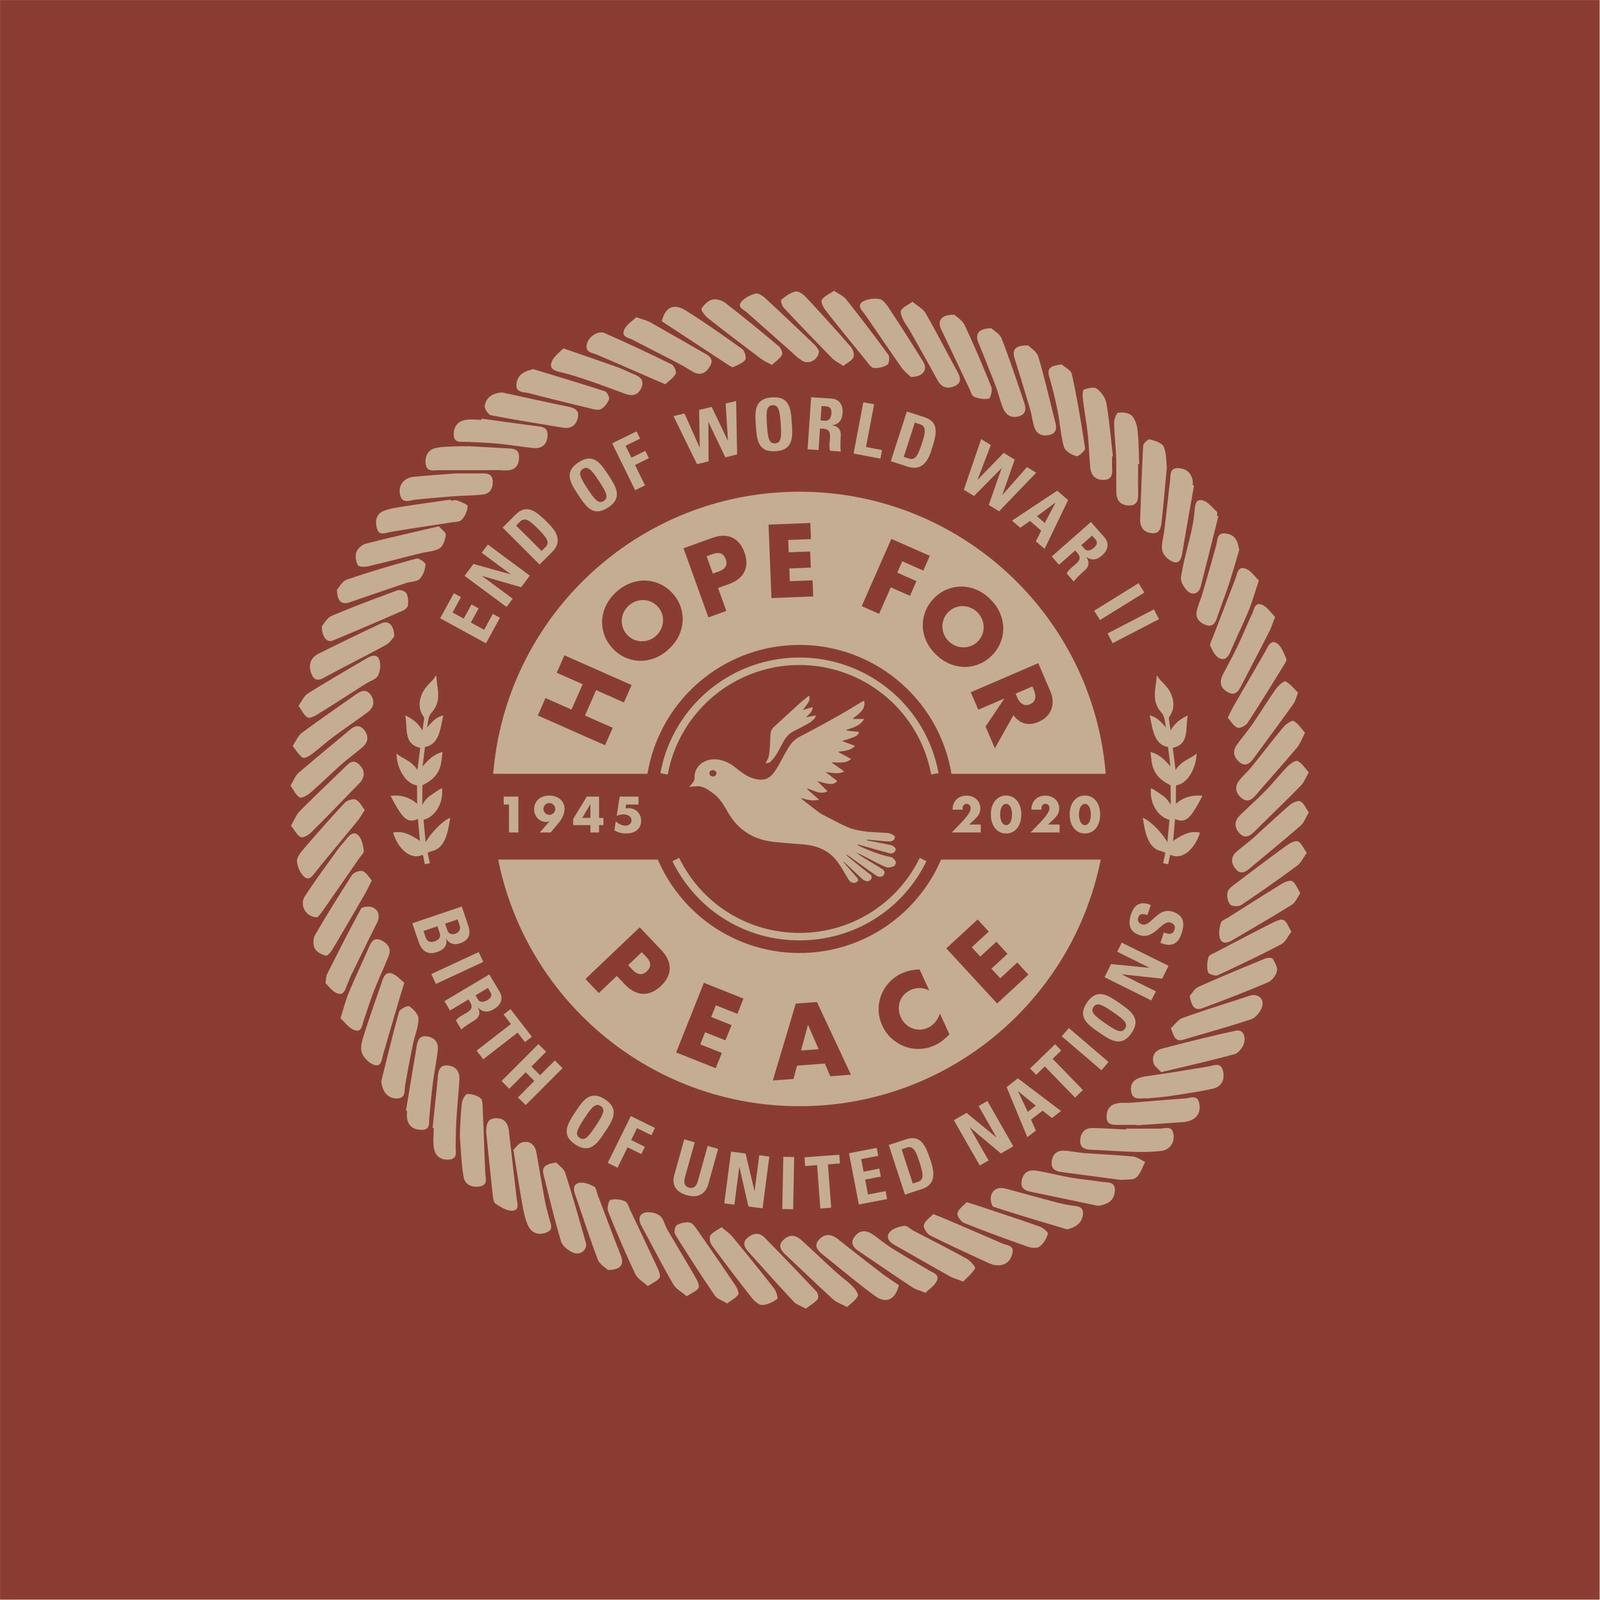 1945: Hope for Peace logo